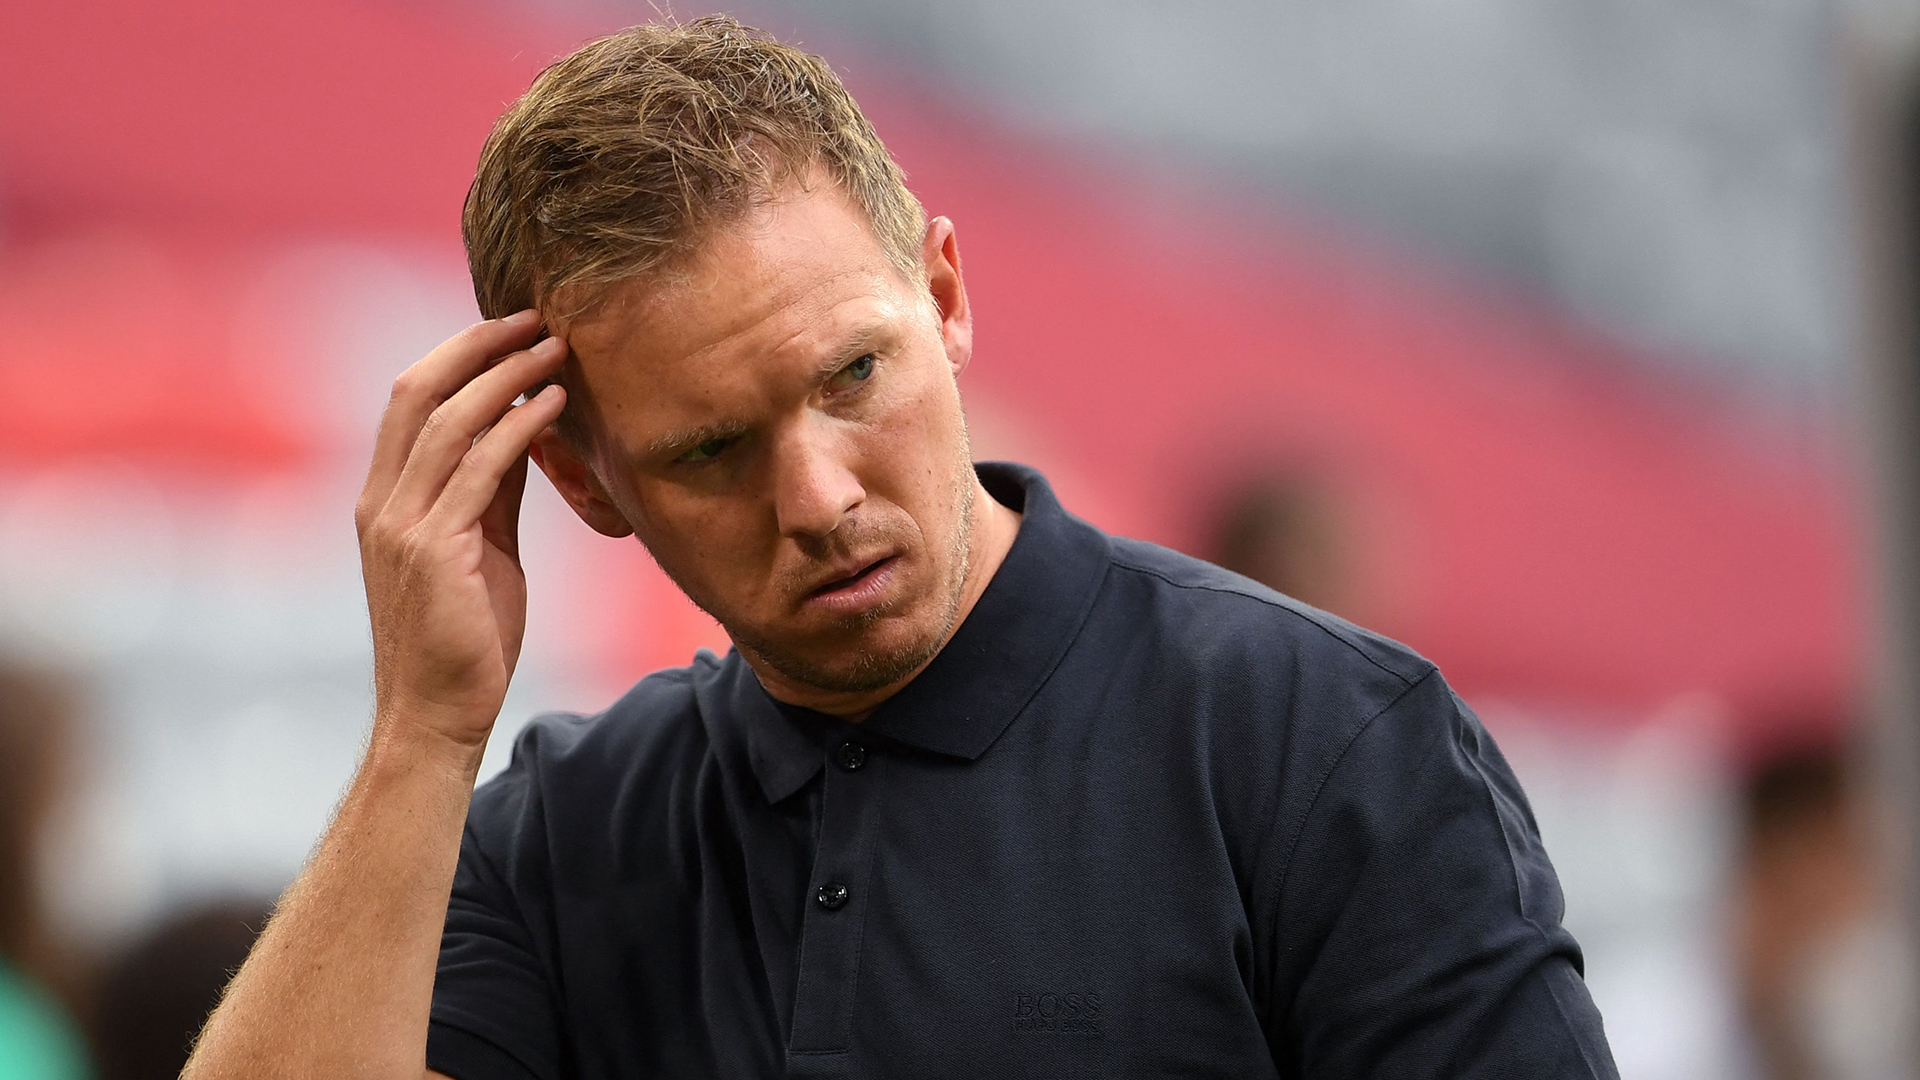 Nagelsmann misses Bayern Munich trip to Benfica with 'flu-like infection'